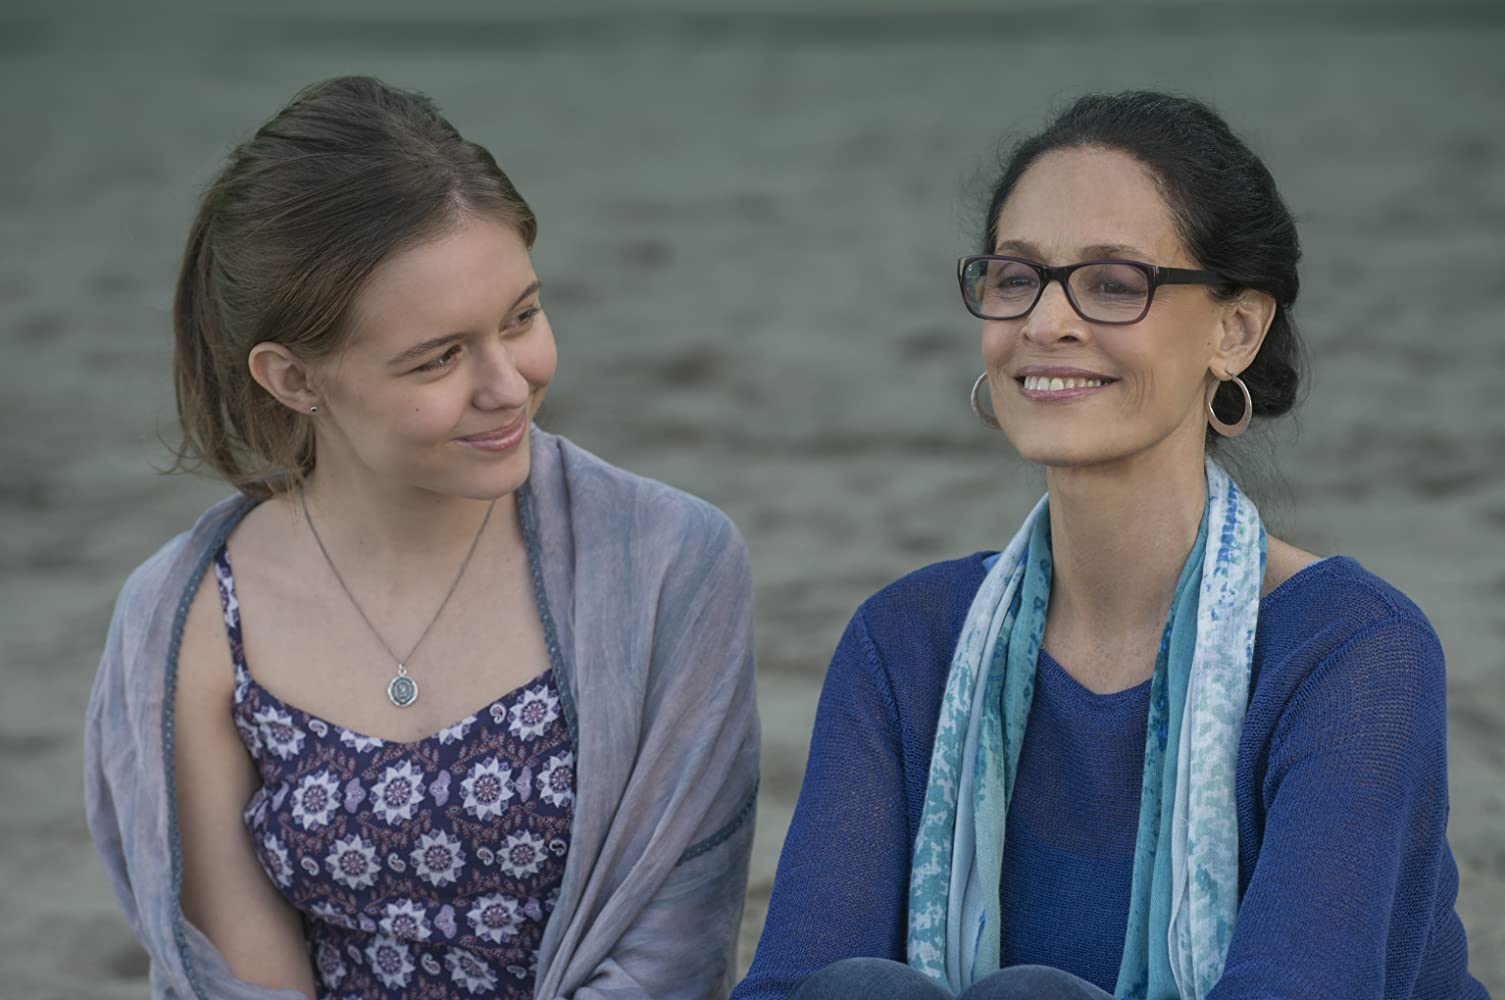 Sônia Braga and Izabela Vidovic in Wonder (2017)